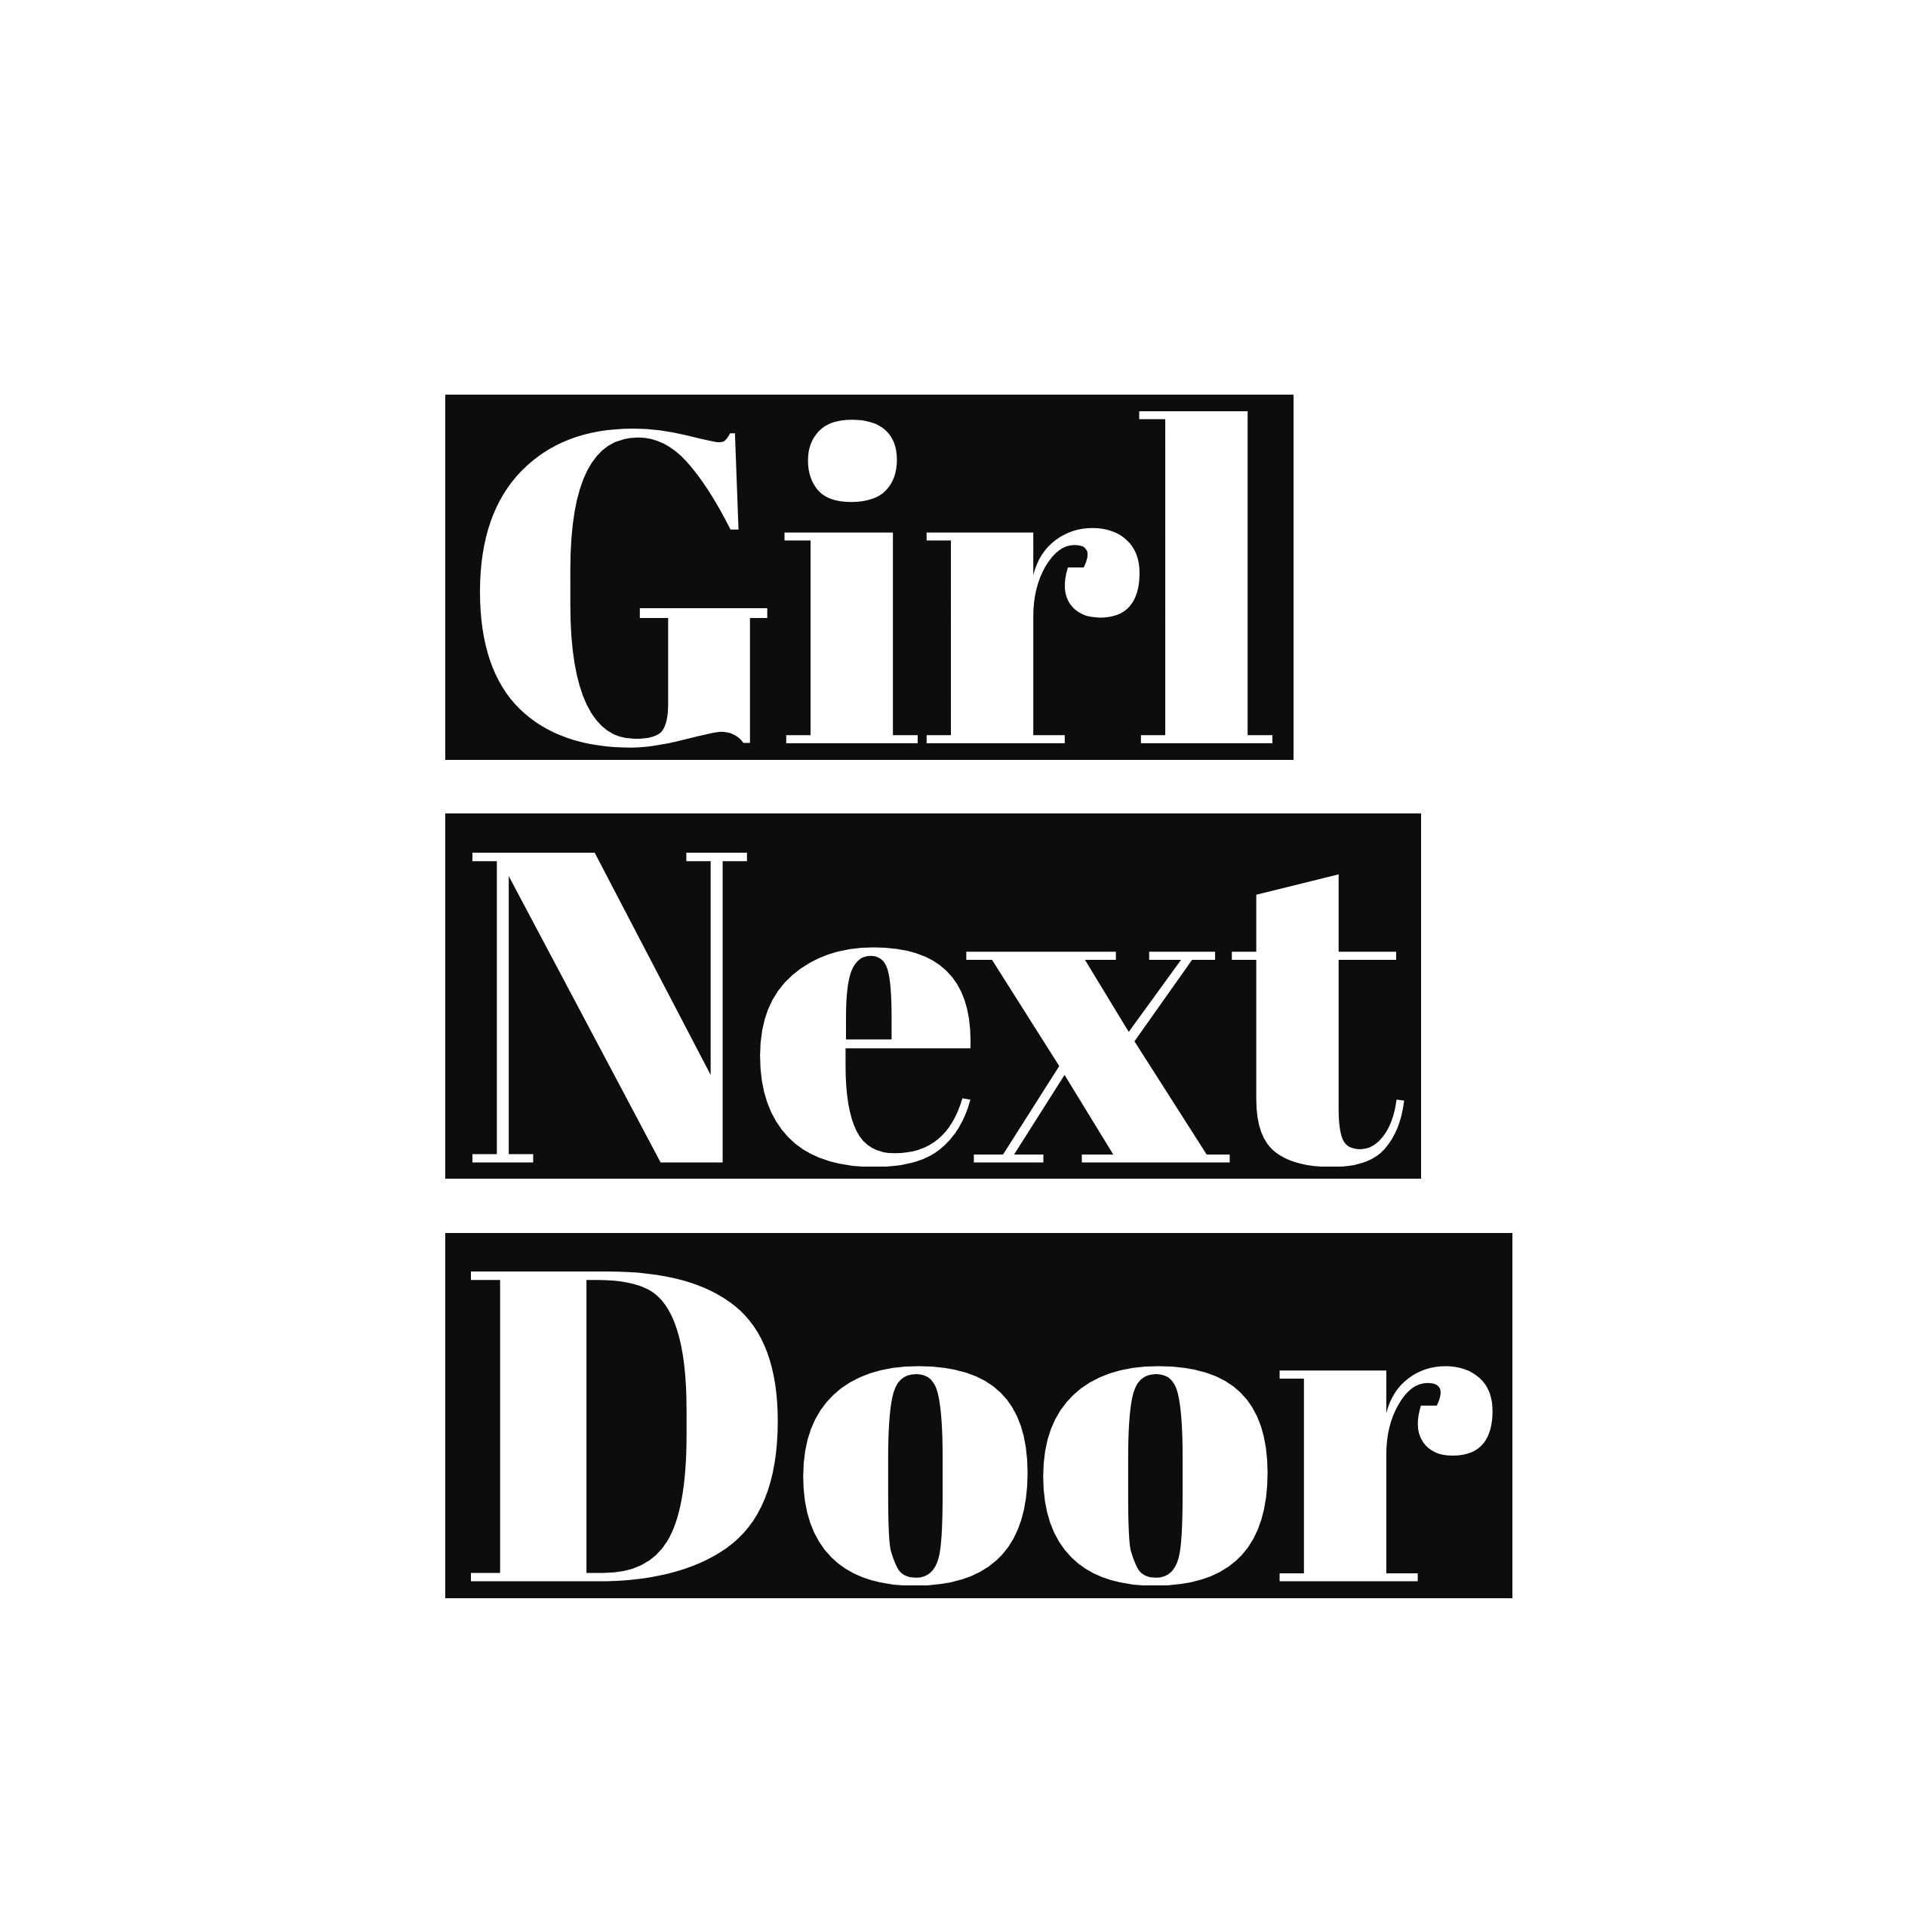 a__girlnextdoor instagram :- a__girlnextdoor, mirakee:- a__girlnextdoor, your qoute :- a__girlnextdoor  peened by :- deepika